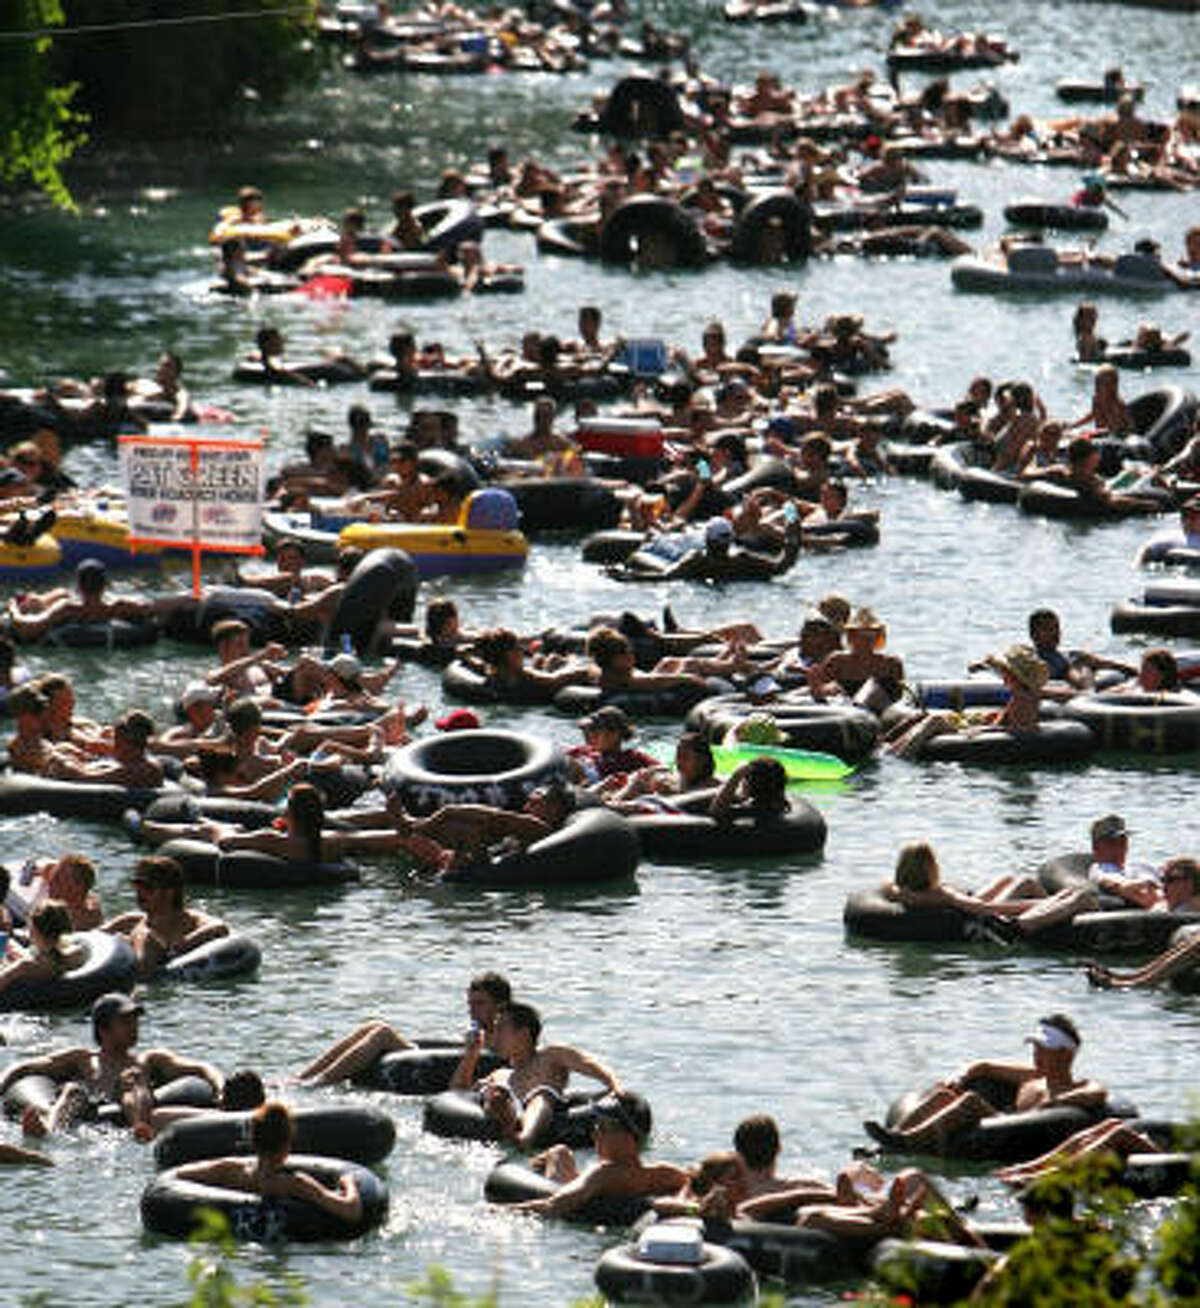 Tubing picked up on the Comal, above, after a drought led to a drop in visitors to the larger Guadalupe River.